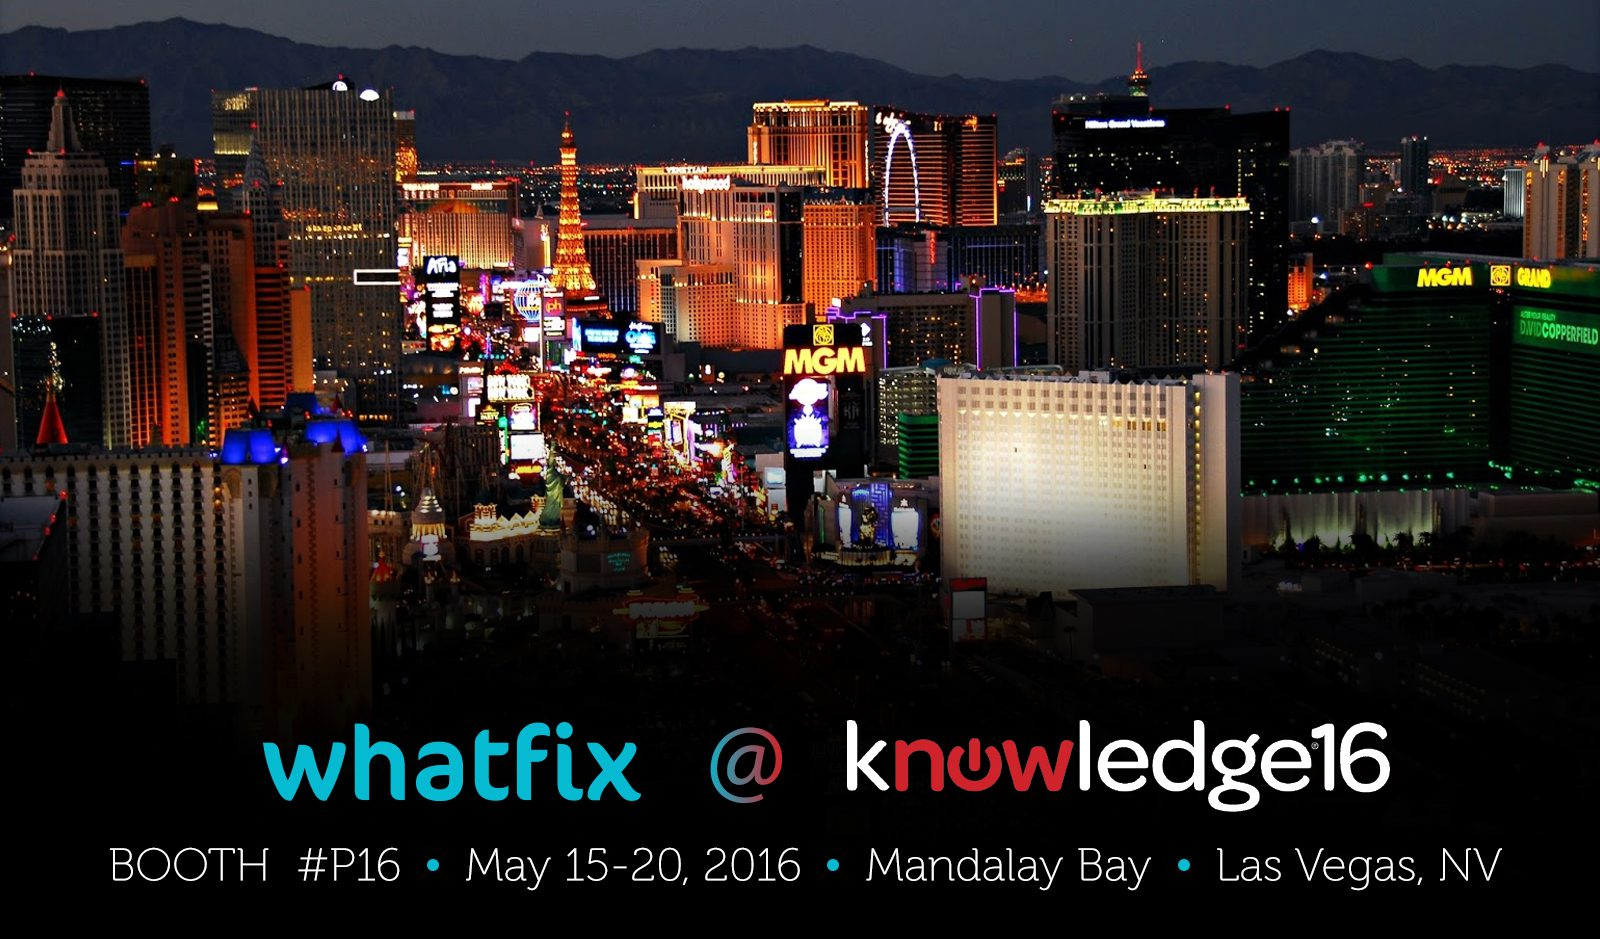 Whatfix at Knowledge16